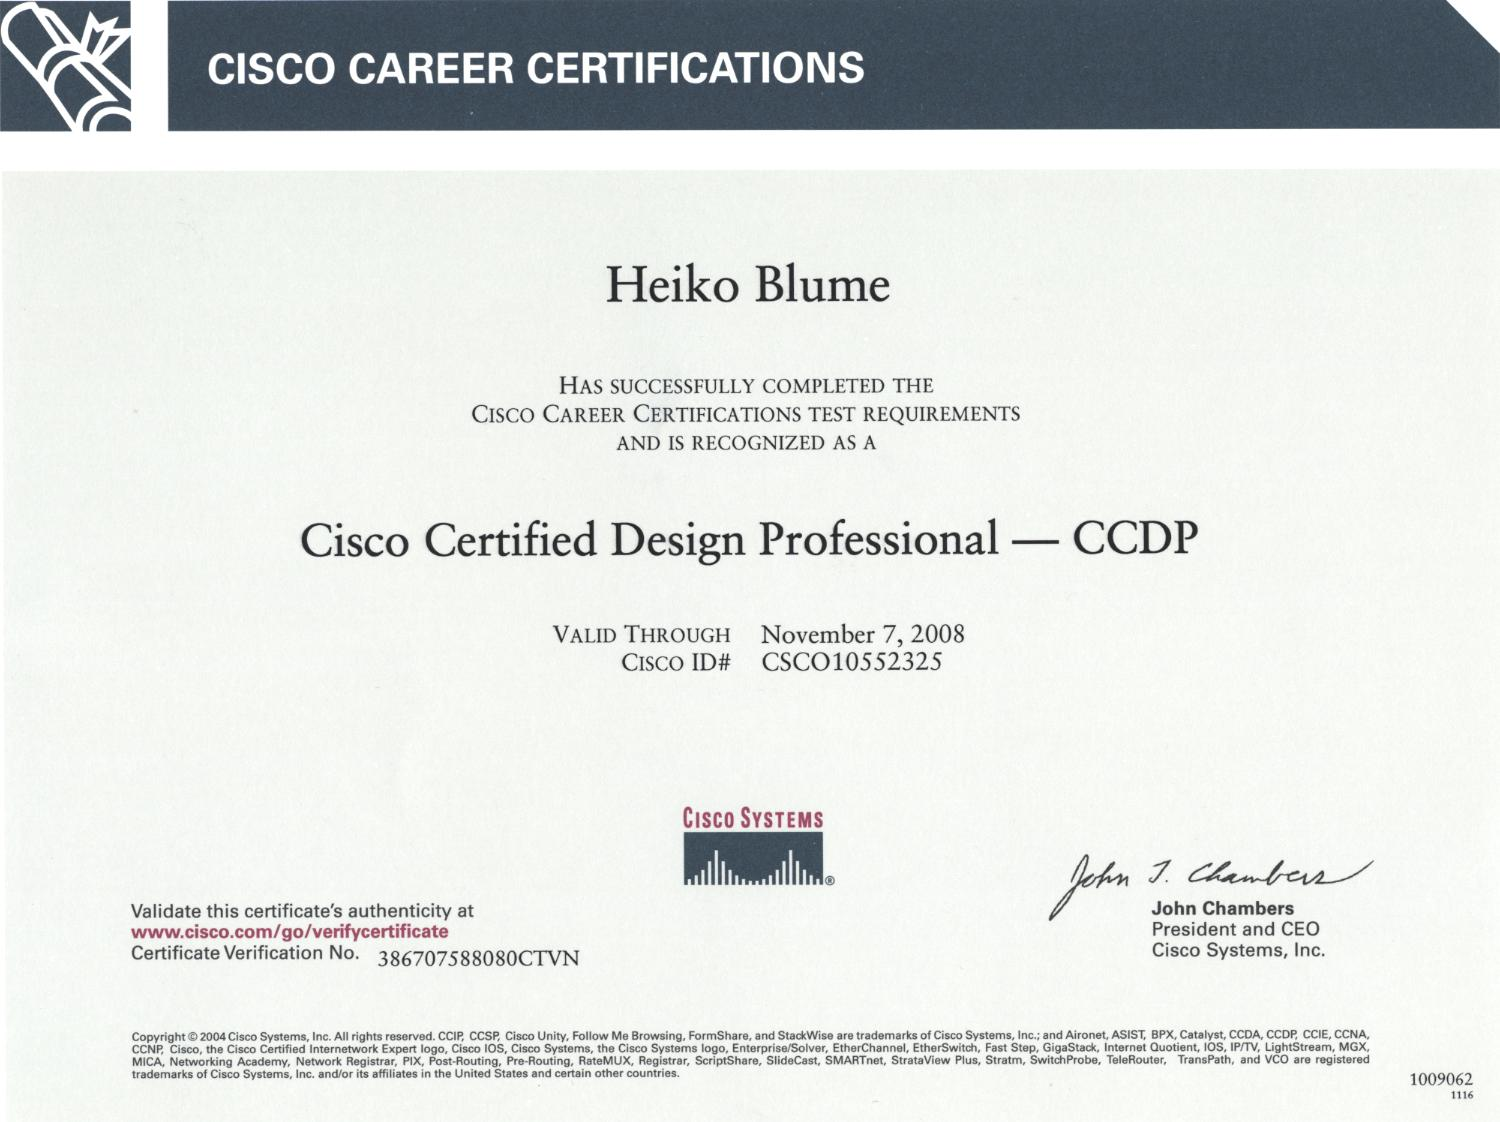 Sliplabel gmbh co kg consultant heiko blume ccdp 2004 1betcityfo Choice Image